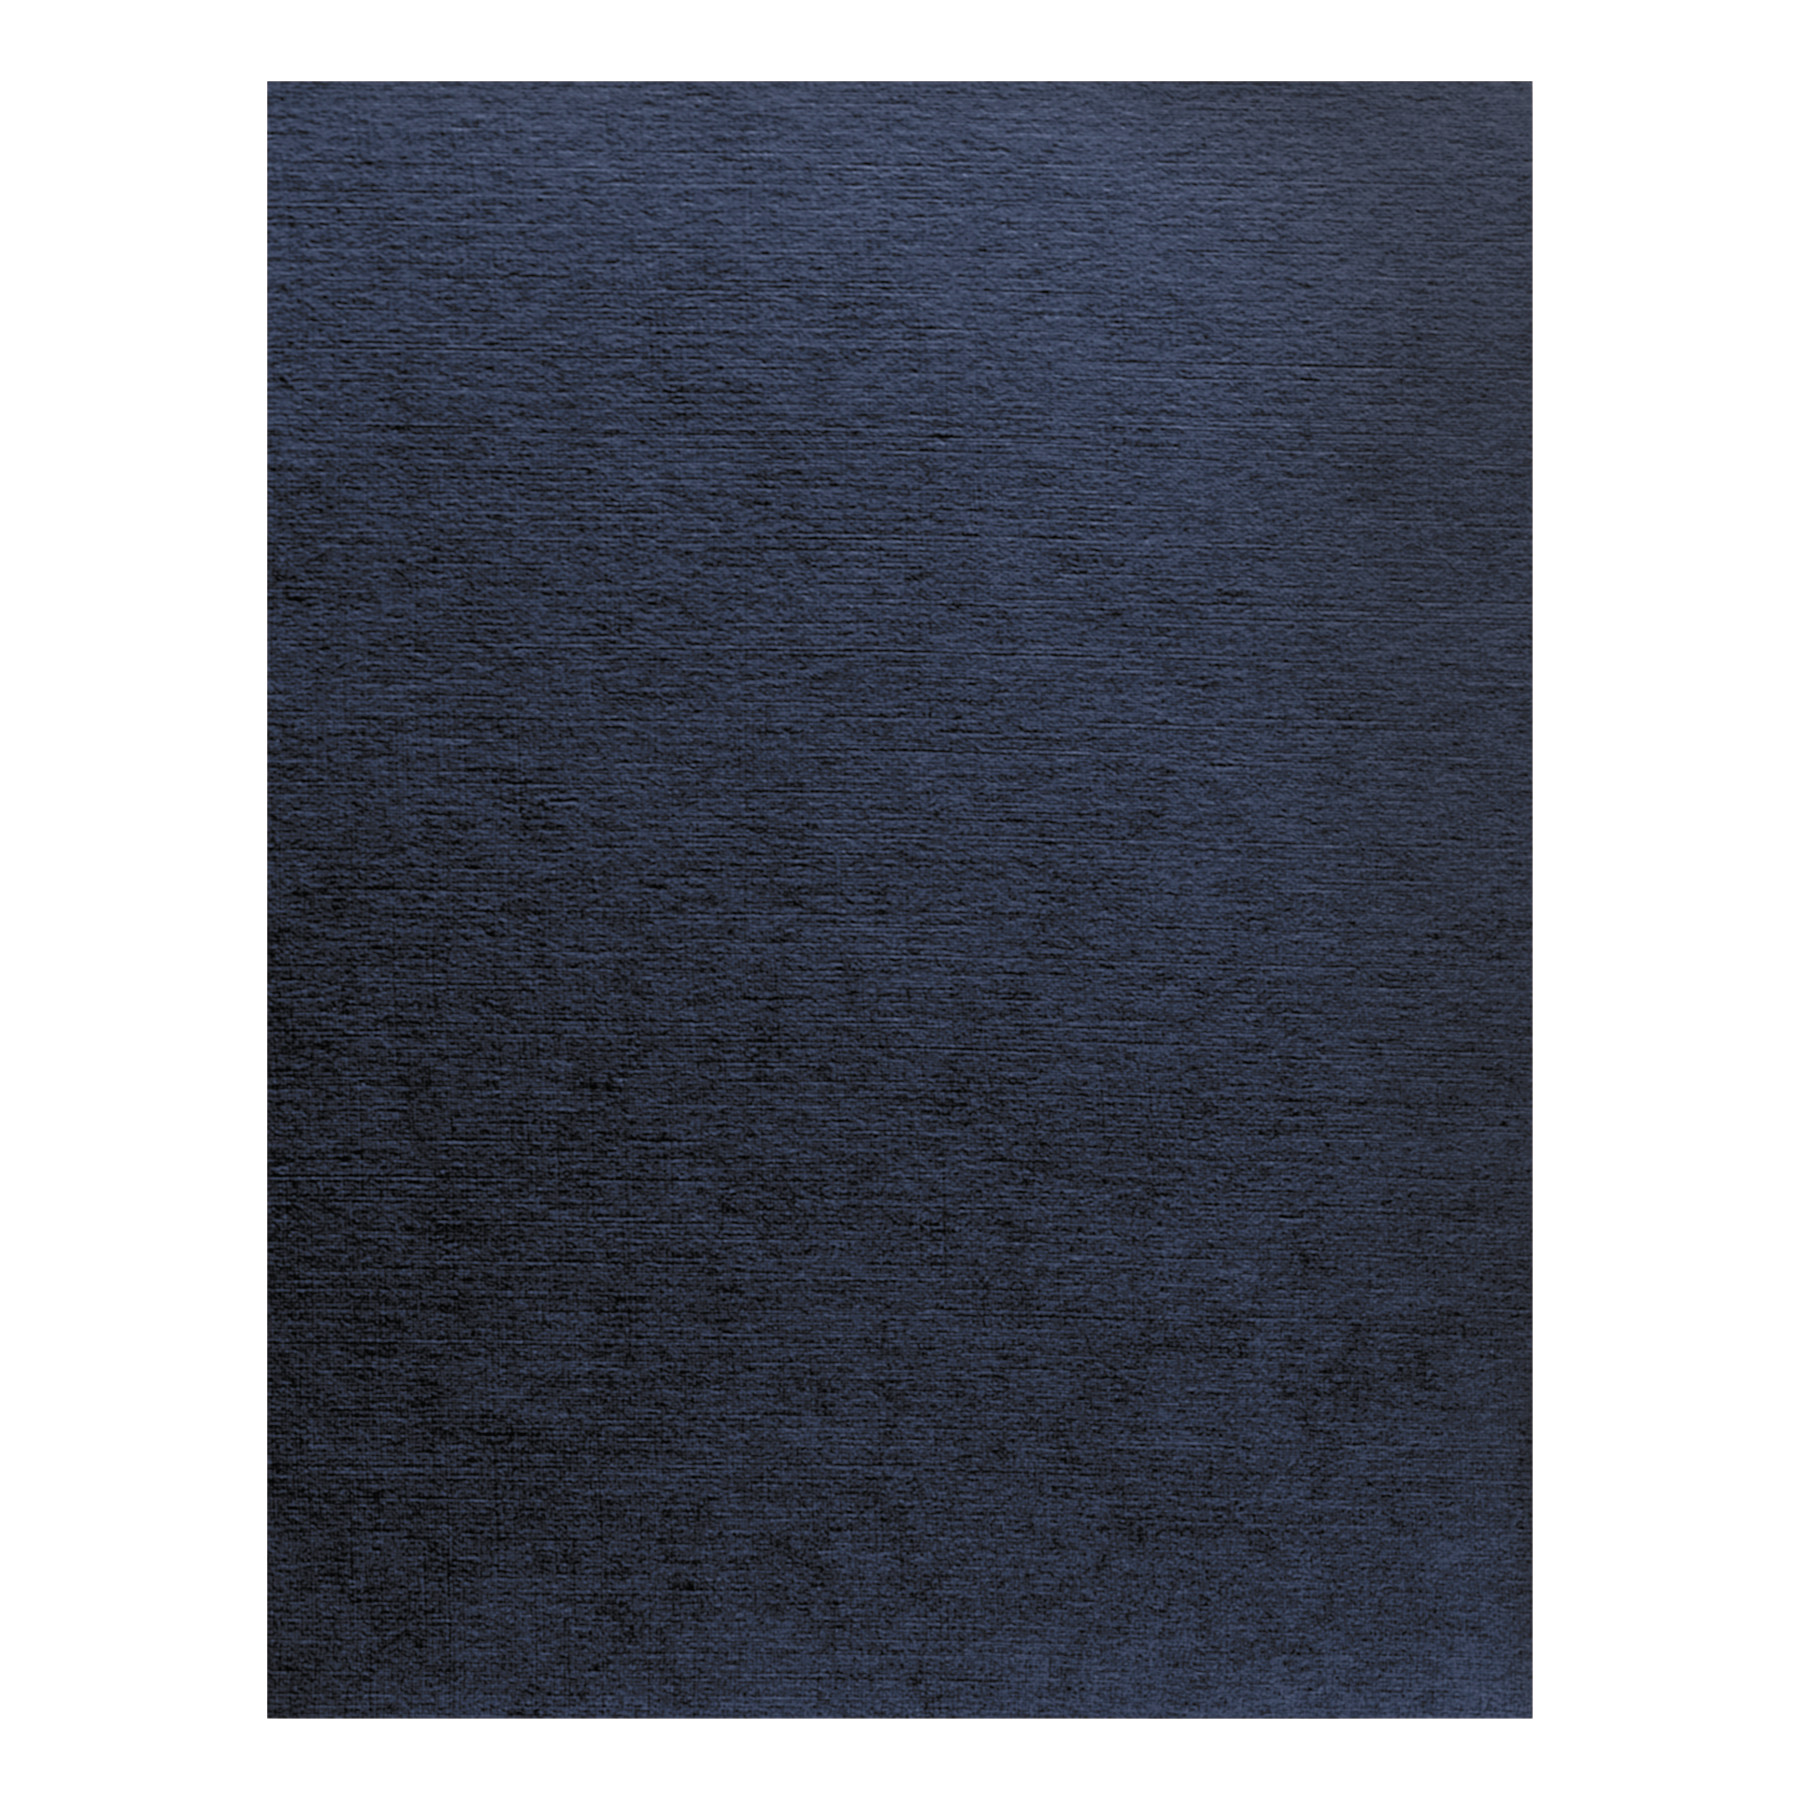 Fellowes Linen Texture Binding System Covers, 11 x 8-1 2, Navy, 200 Pack -FEL52098 by FELLOWES MFG. CO.